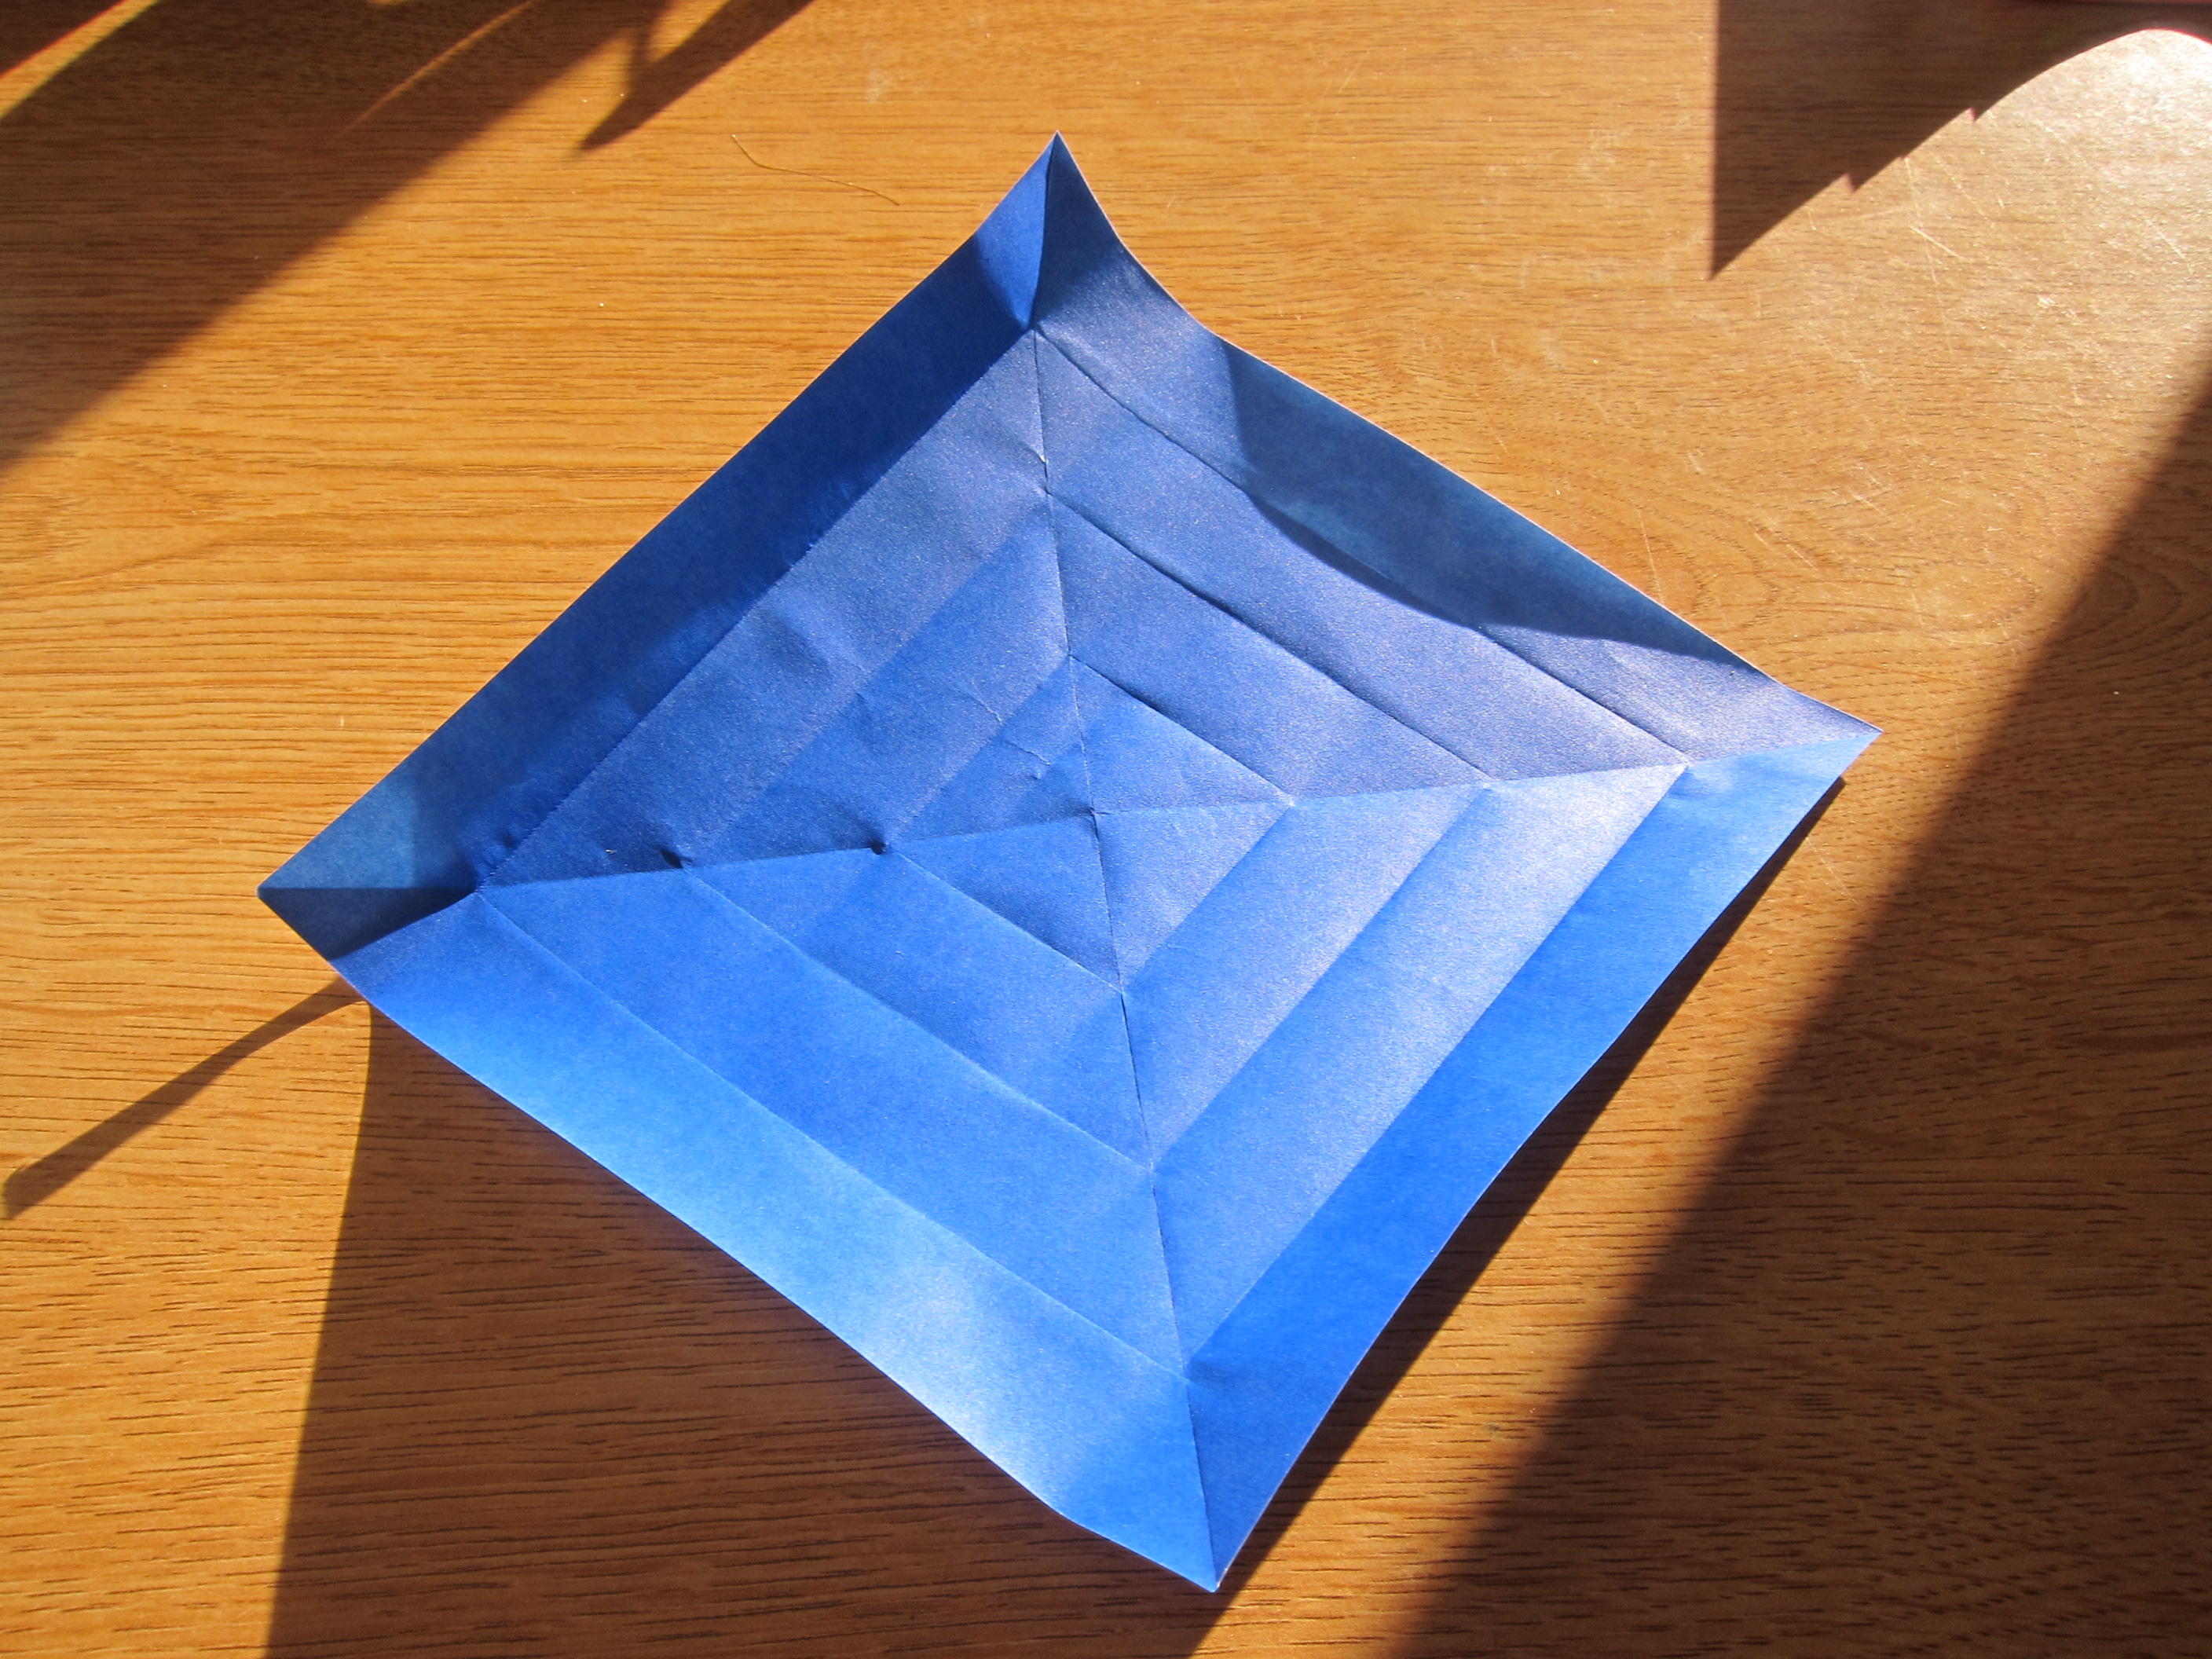 Picture of Folding a Hyperbolic Paraboloid